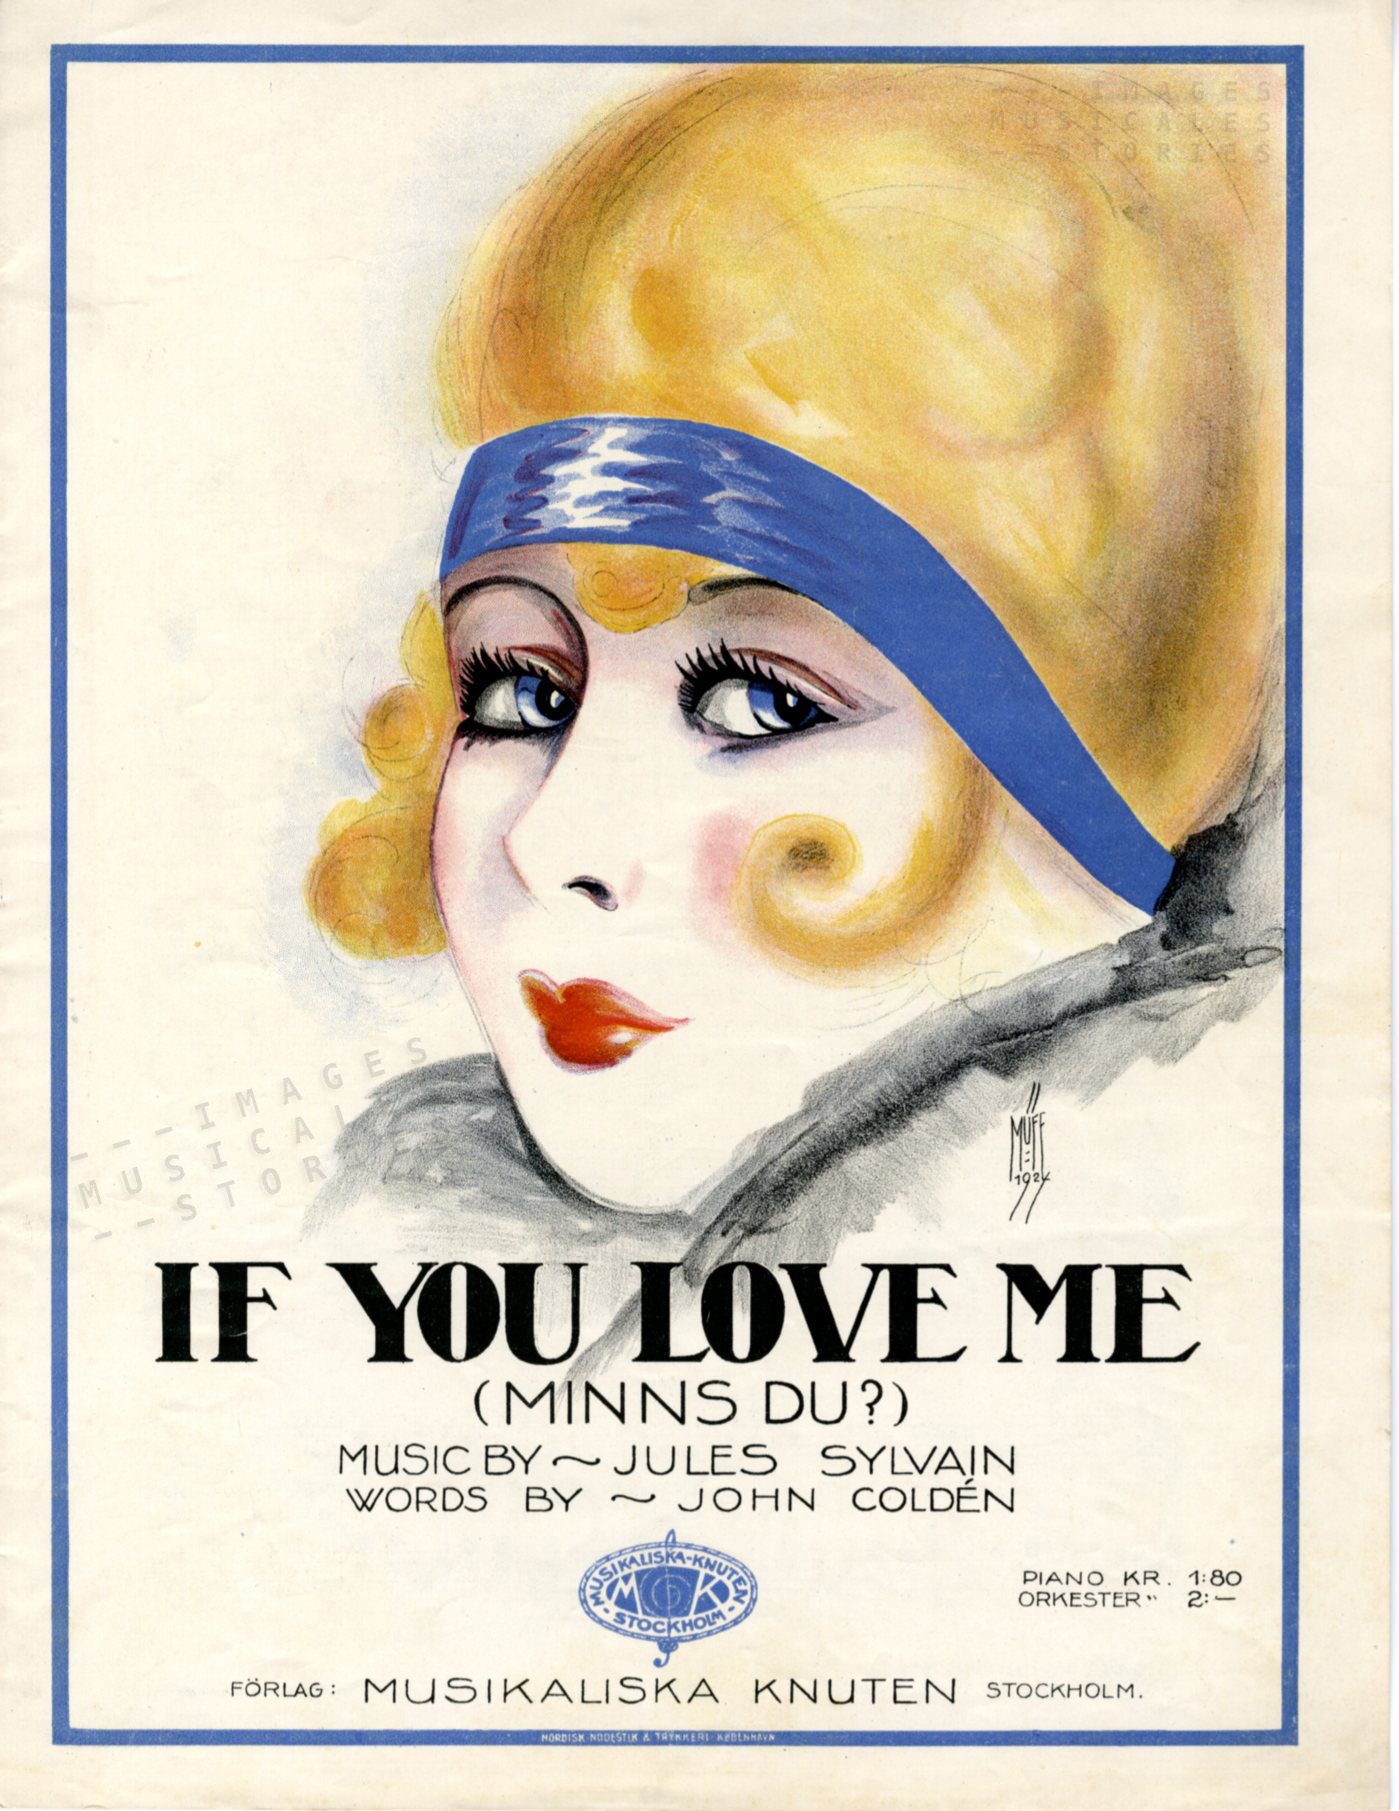 'If you love me', music by Jules Sylvain (1924)